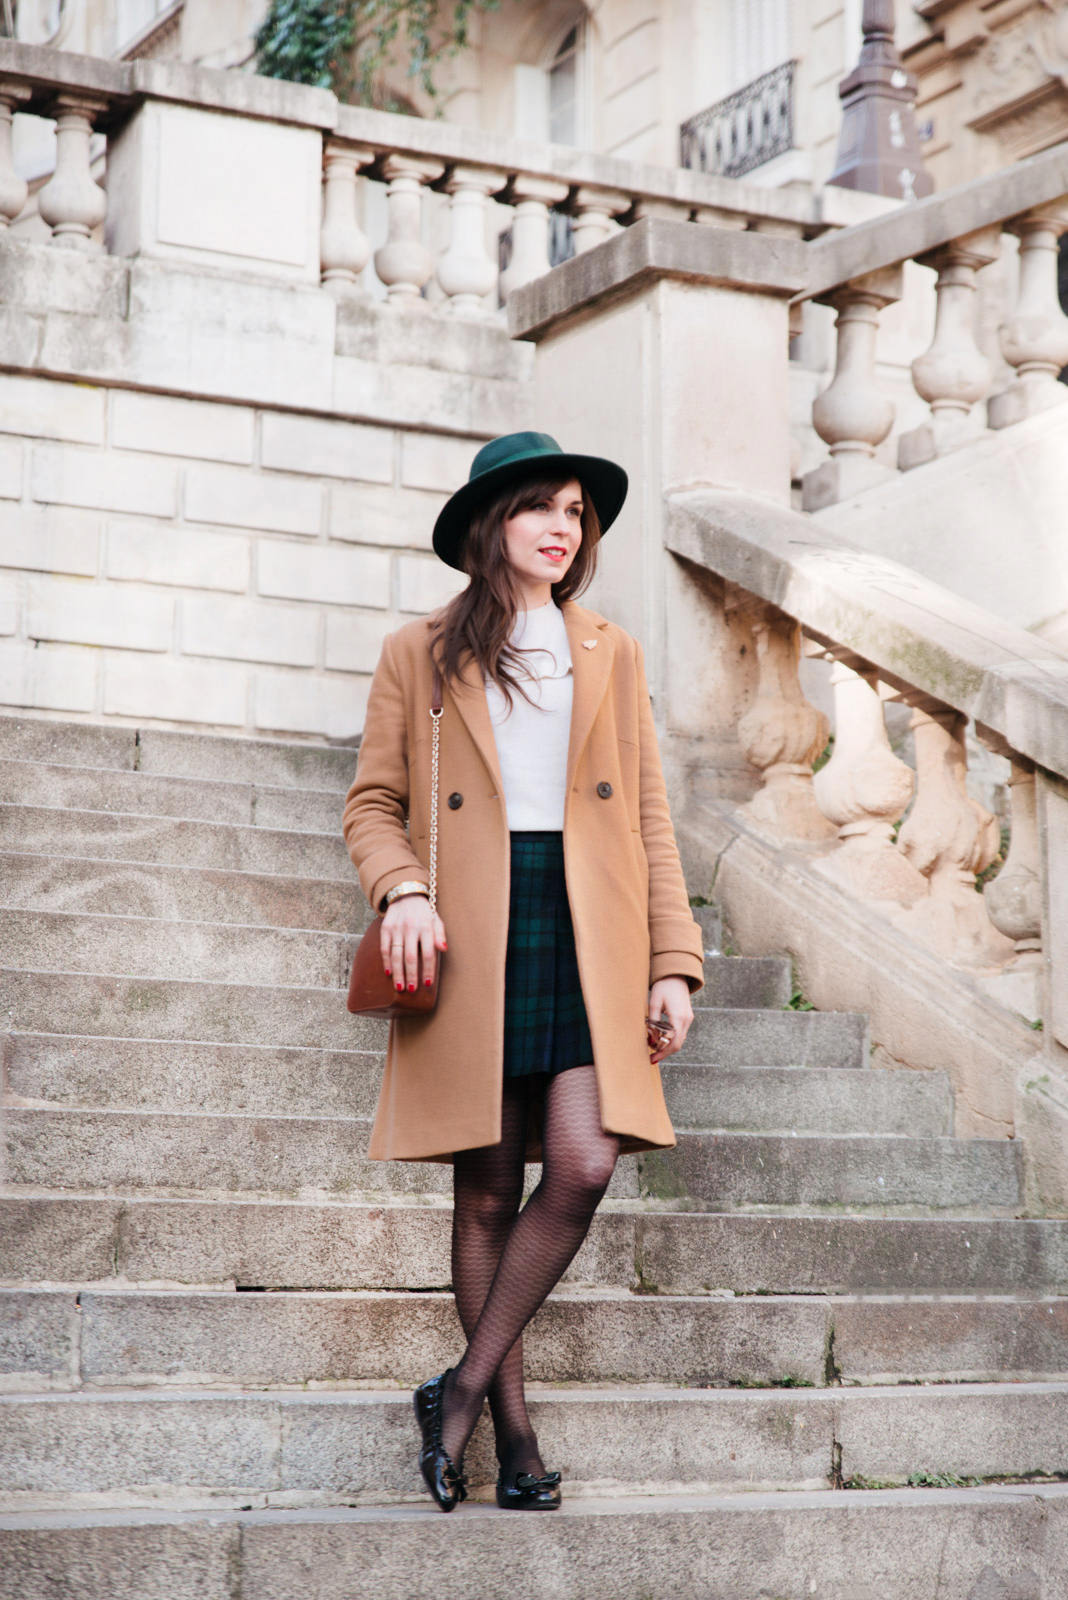 Blog-Mode-And-The-City-Looks-3-tenues-3-collants 2